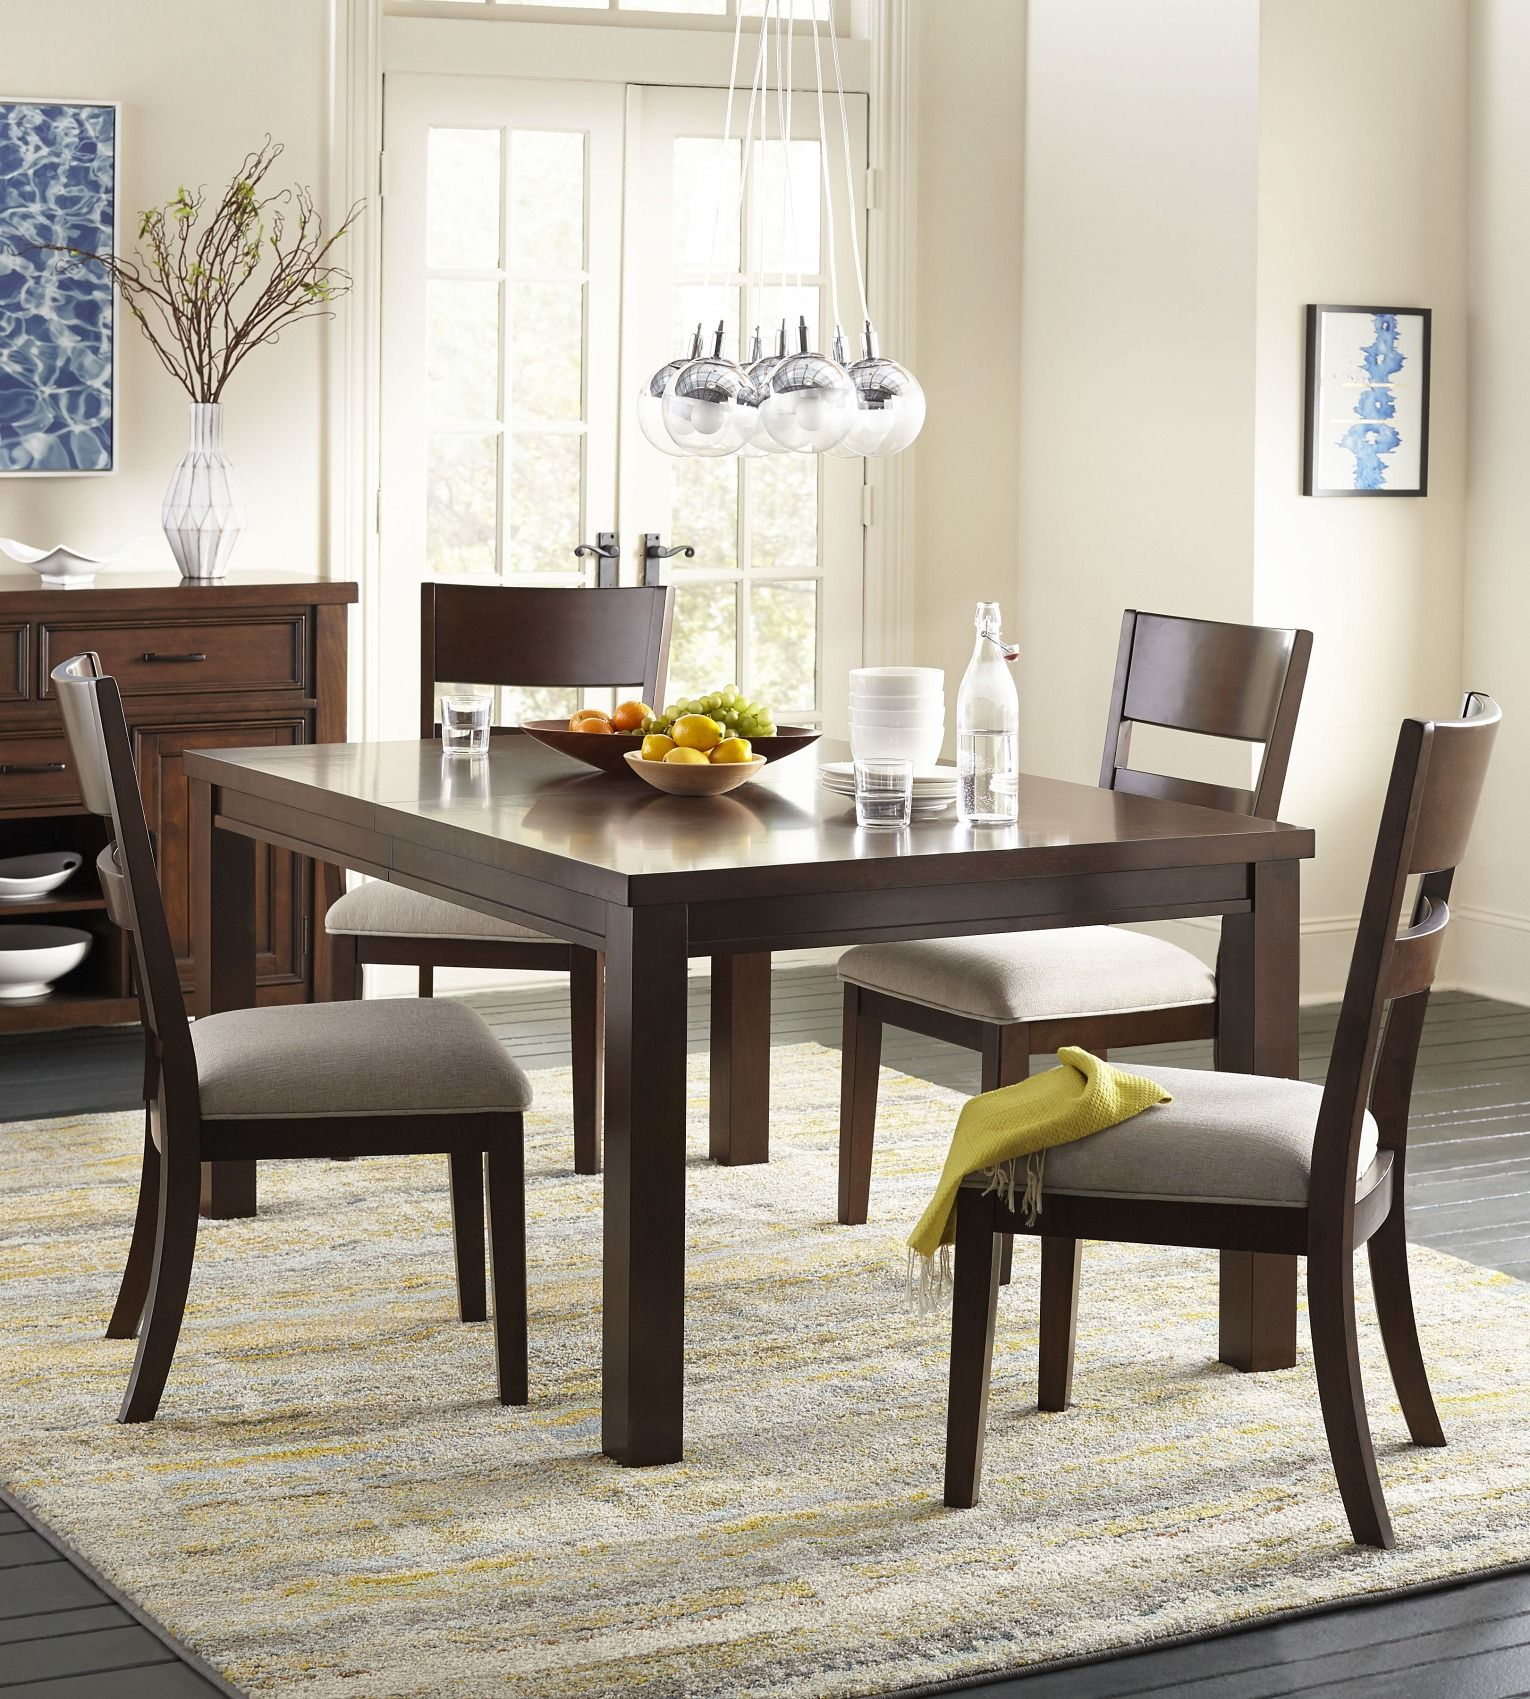 Room Store Chandler: Give Your Room A Welcoming Look With The Squared Table